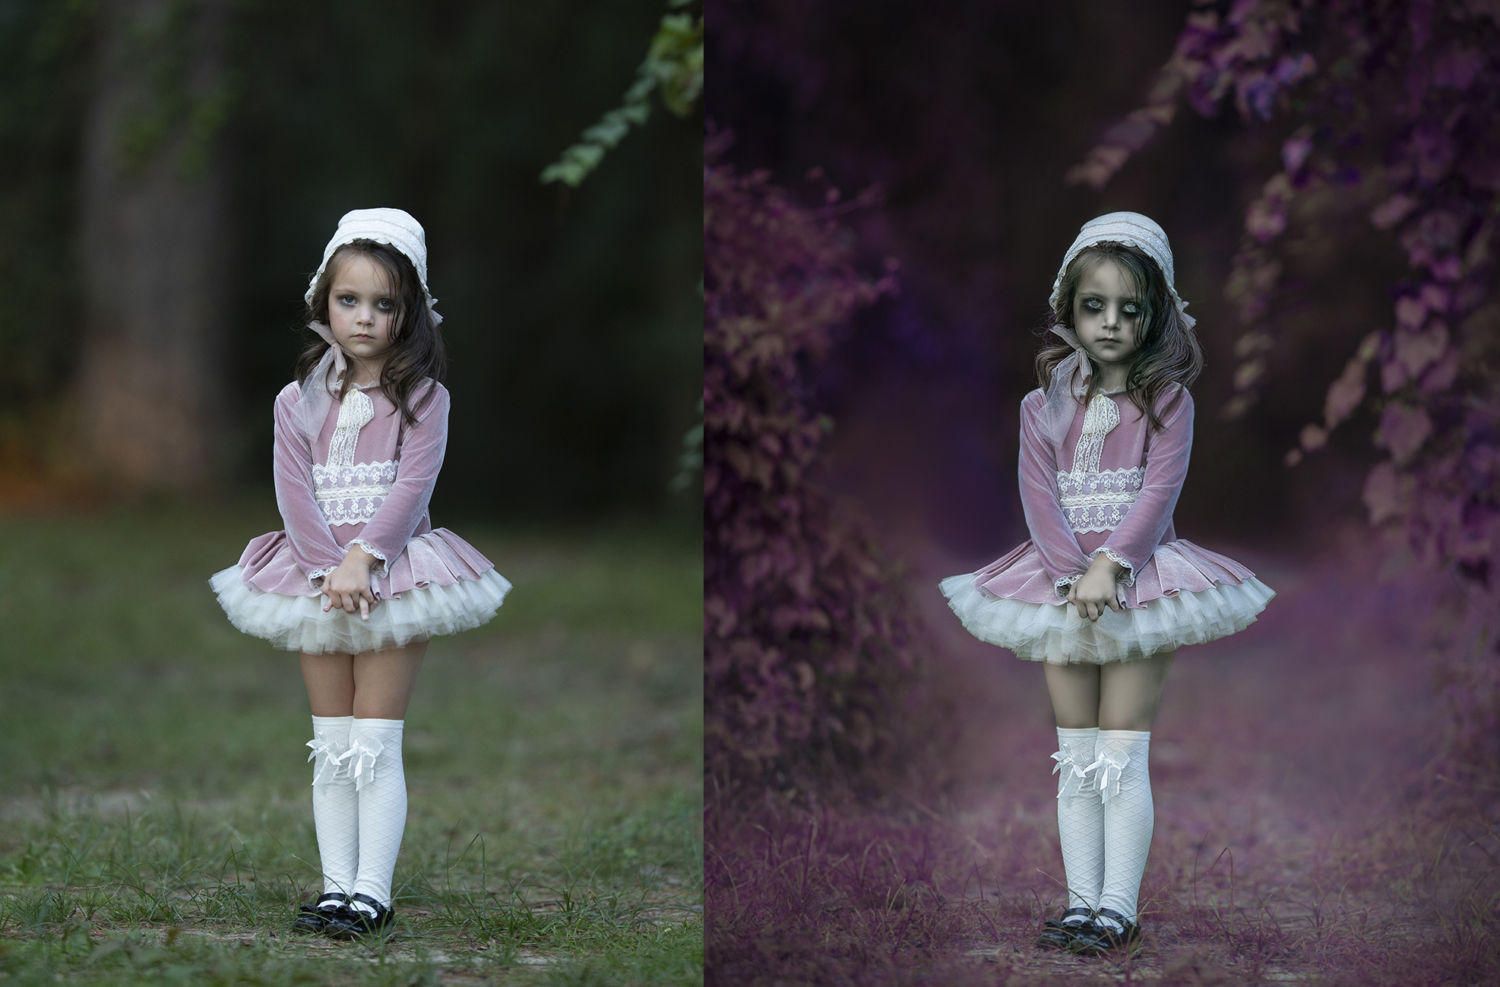 creepy-doll-photoshop-edit